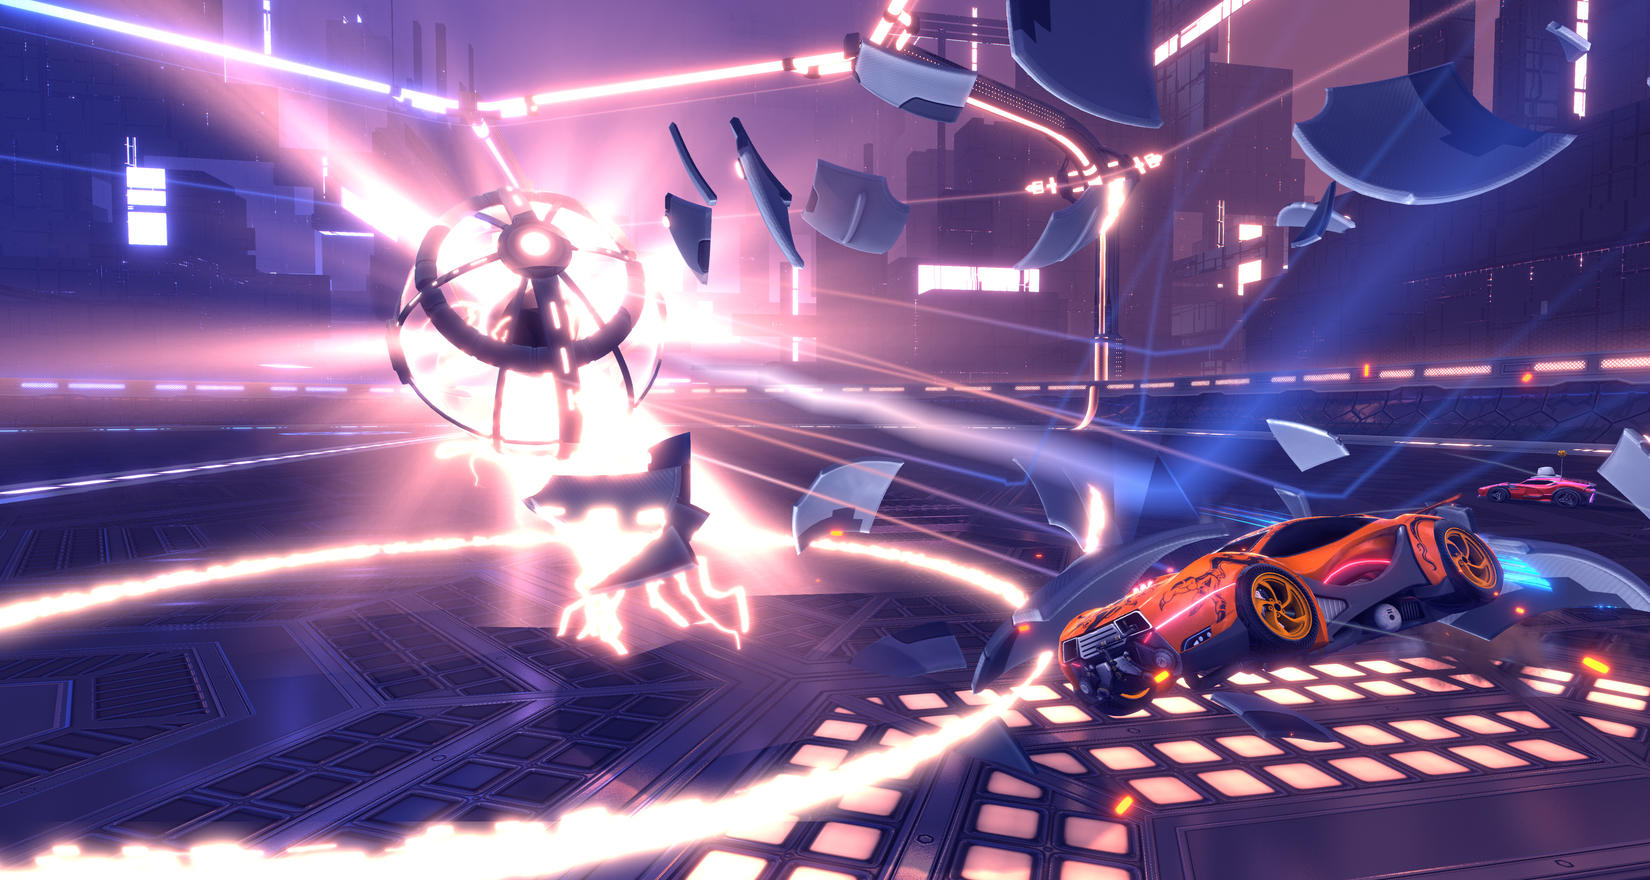 Update To Rocket League Adds New Dropshot Gameplay Variant